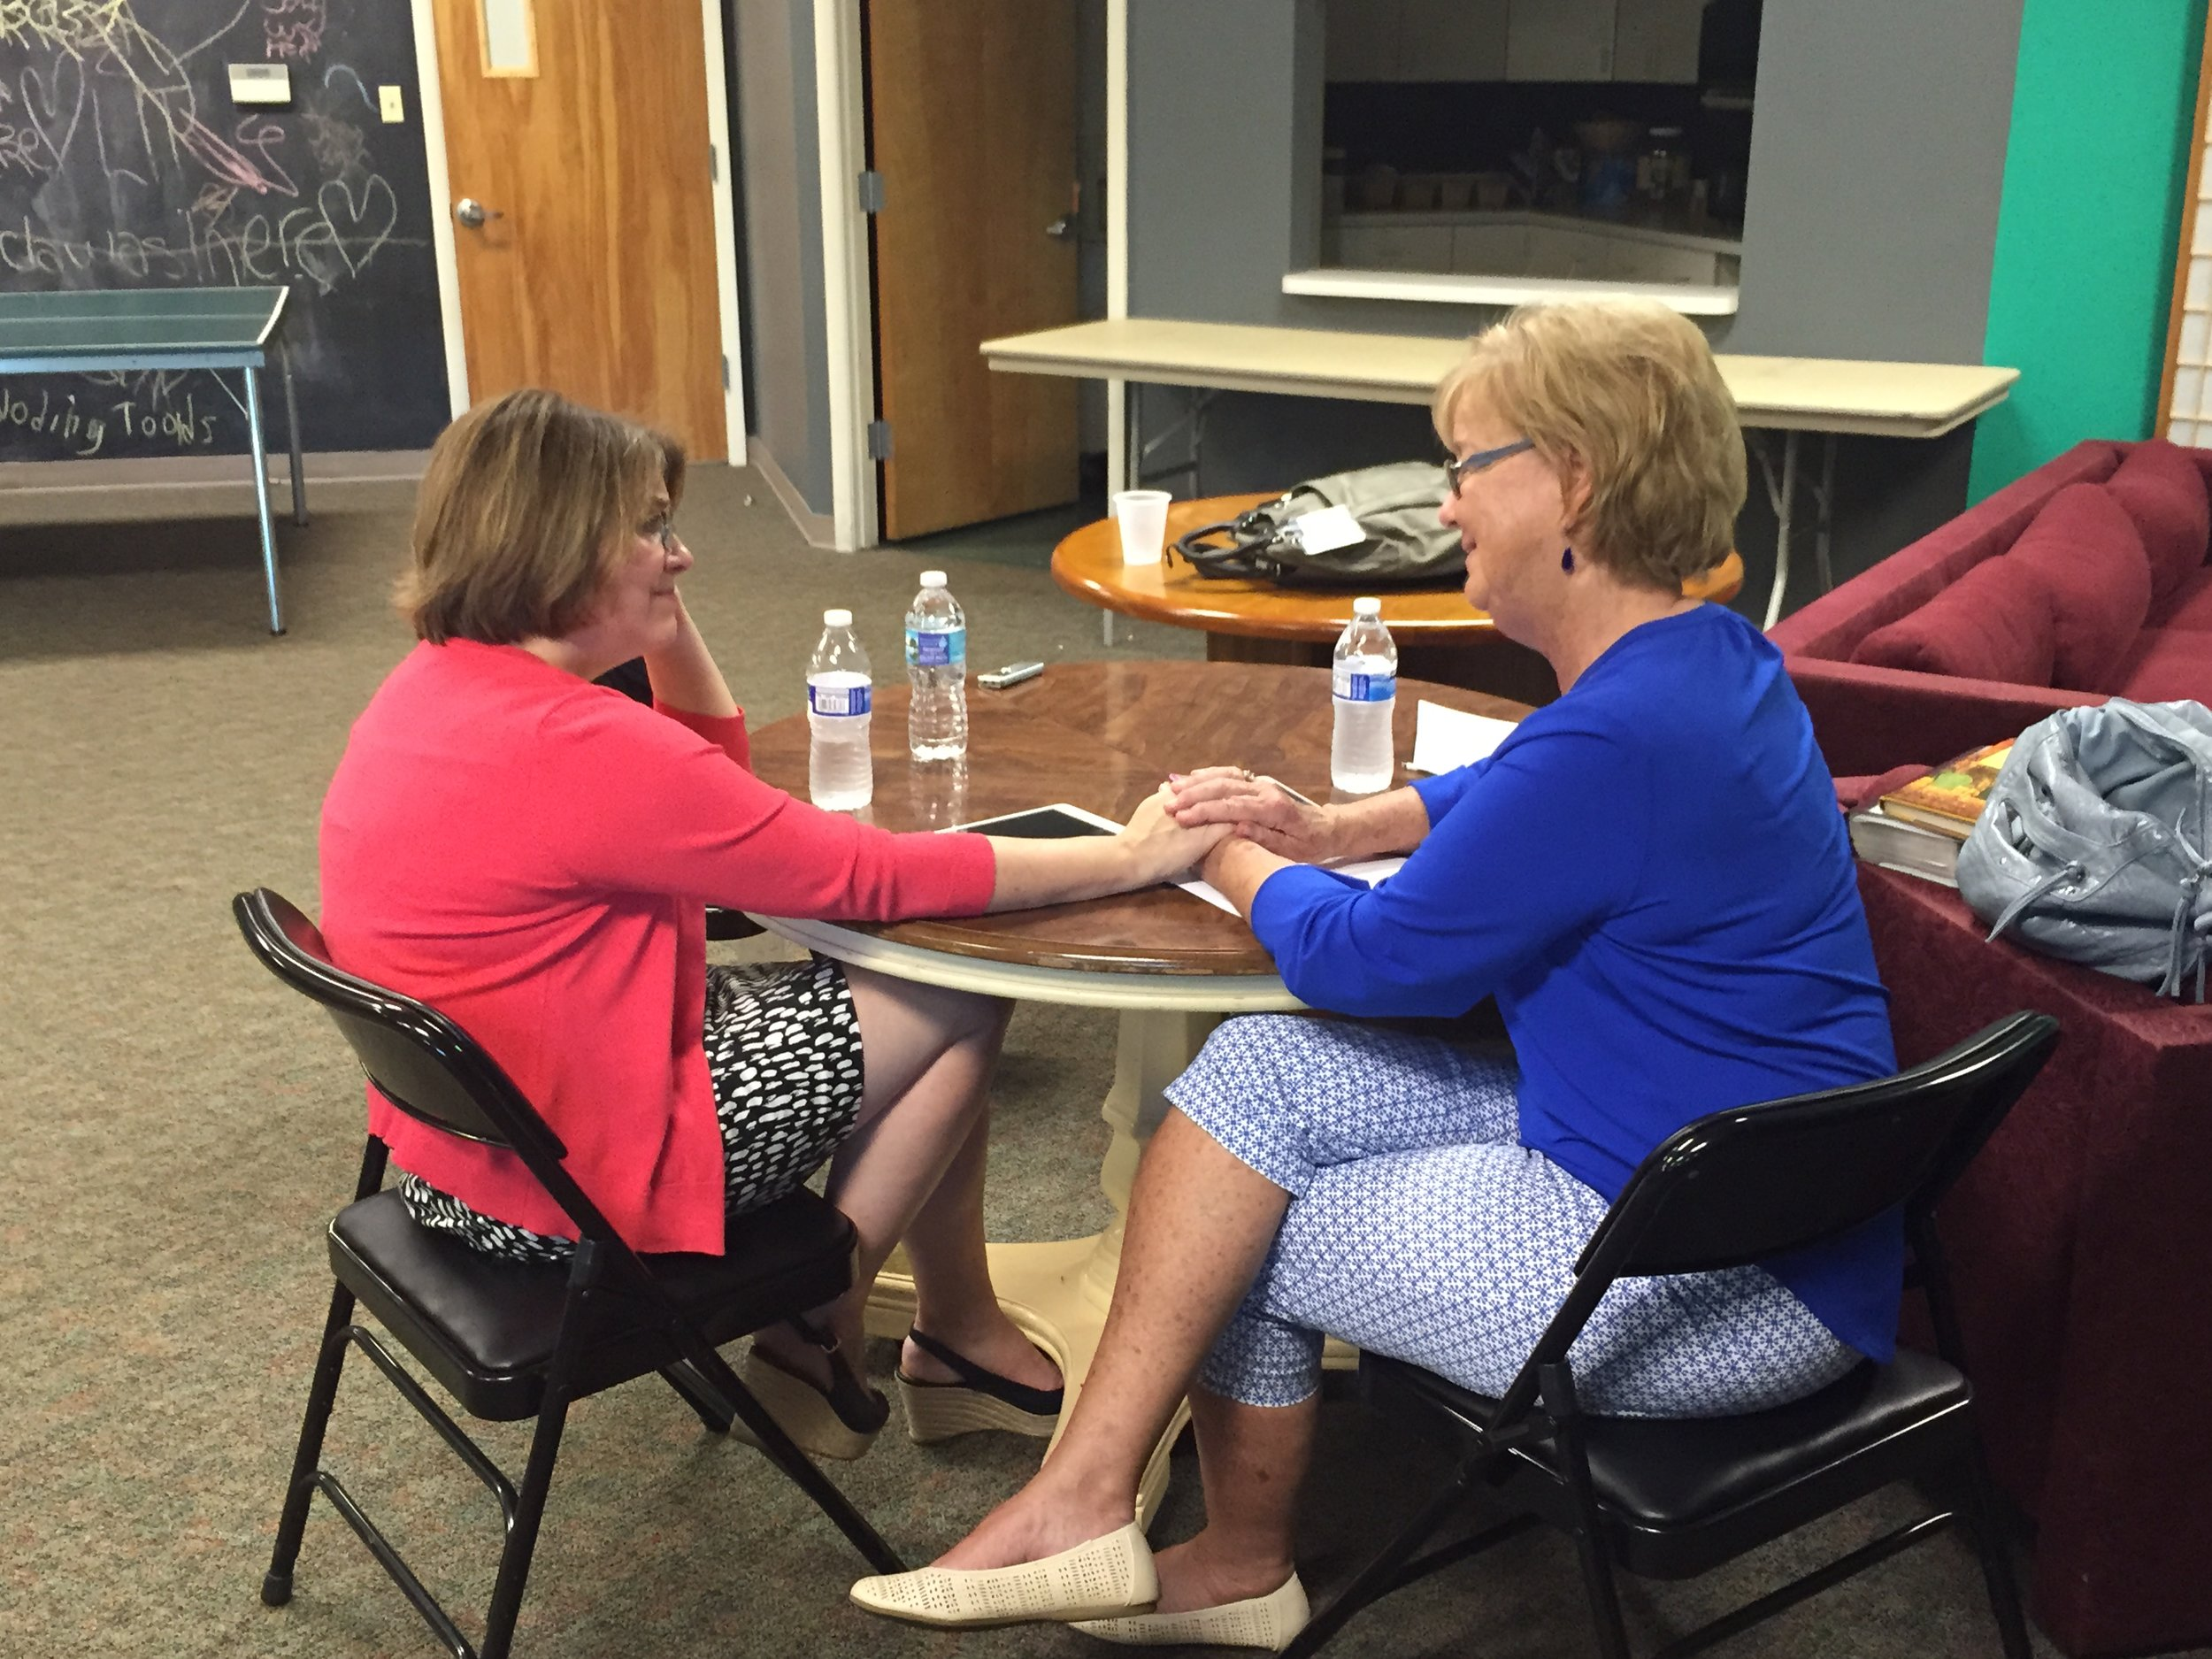 Nancy (left) and Sharon (right) sharing their grief and recording this interview.